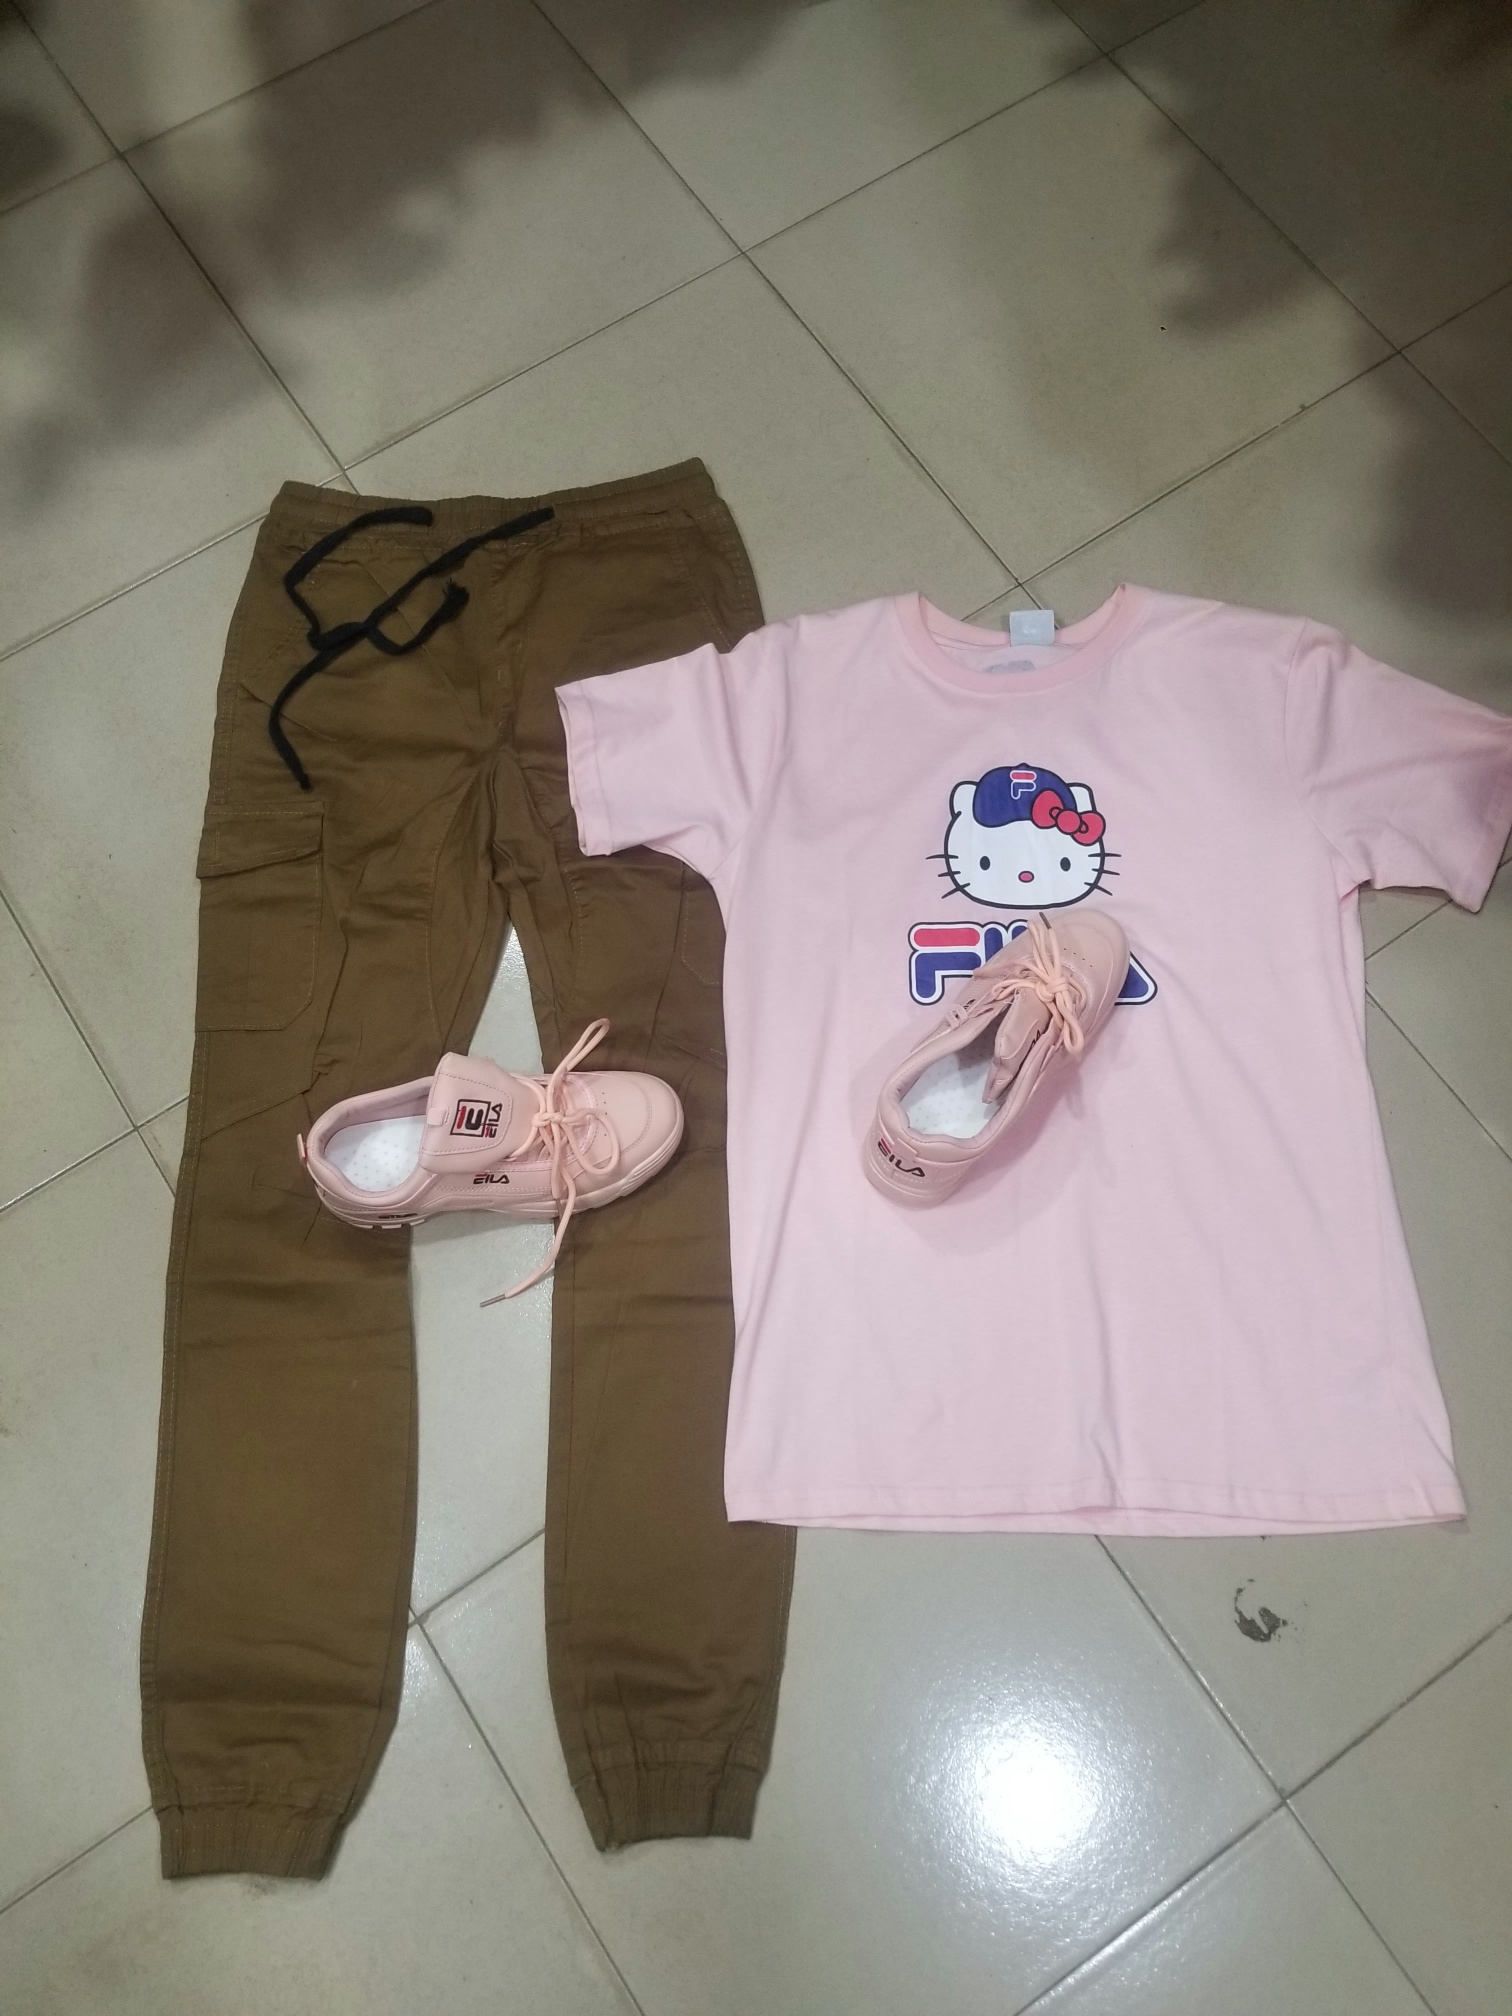 Track, T-shirt, and Sneaker